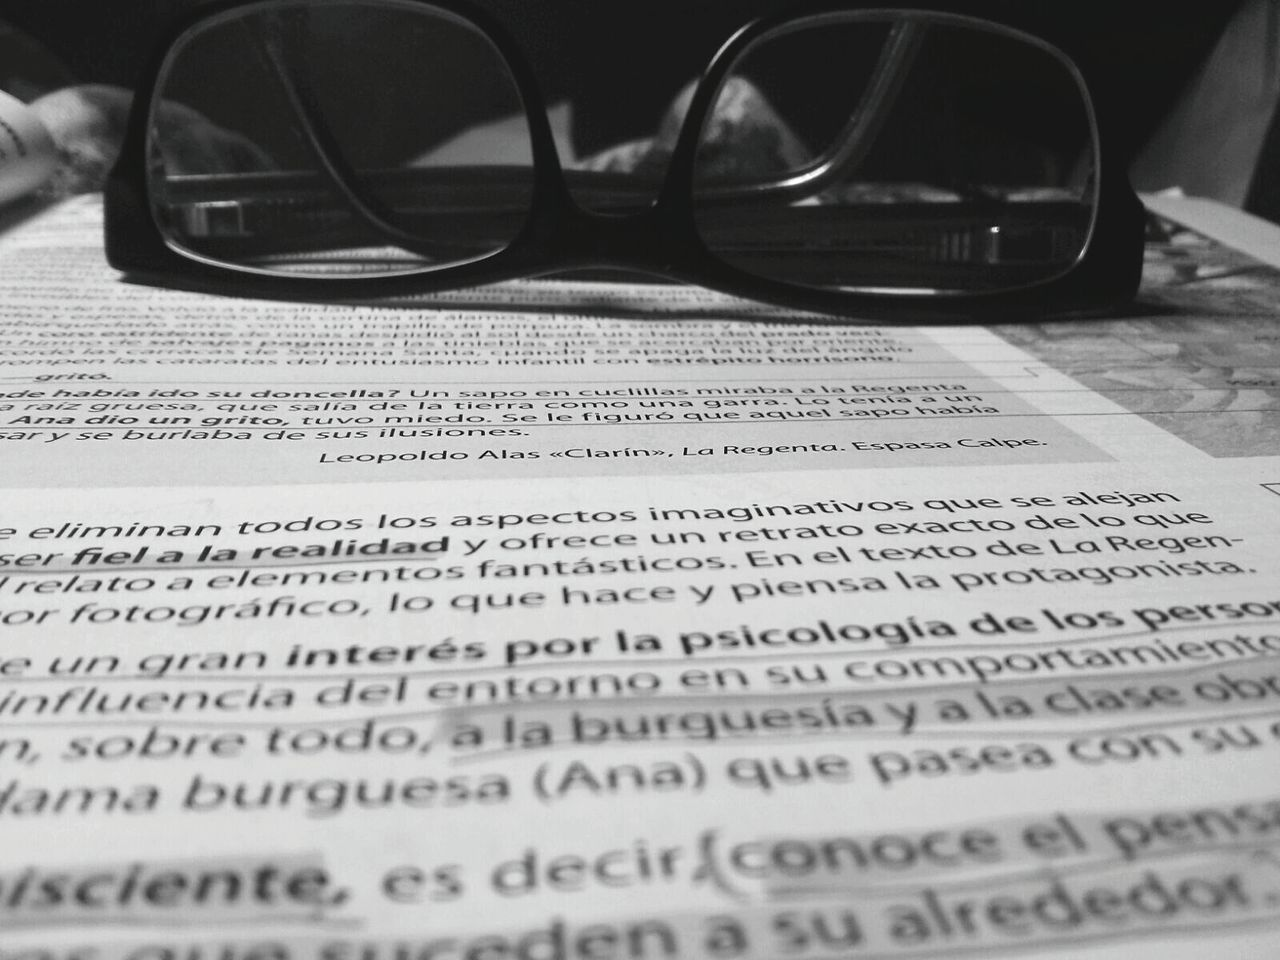 sunglasses, eyeglasses, text, table, eyewear, education, vision, book, communication, indoors, paper, no people, newspaper, eyesight, glasses, close-up, reading glasses, day